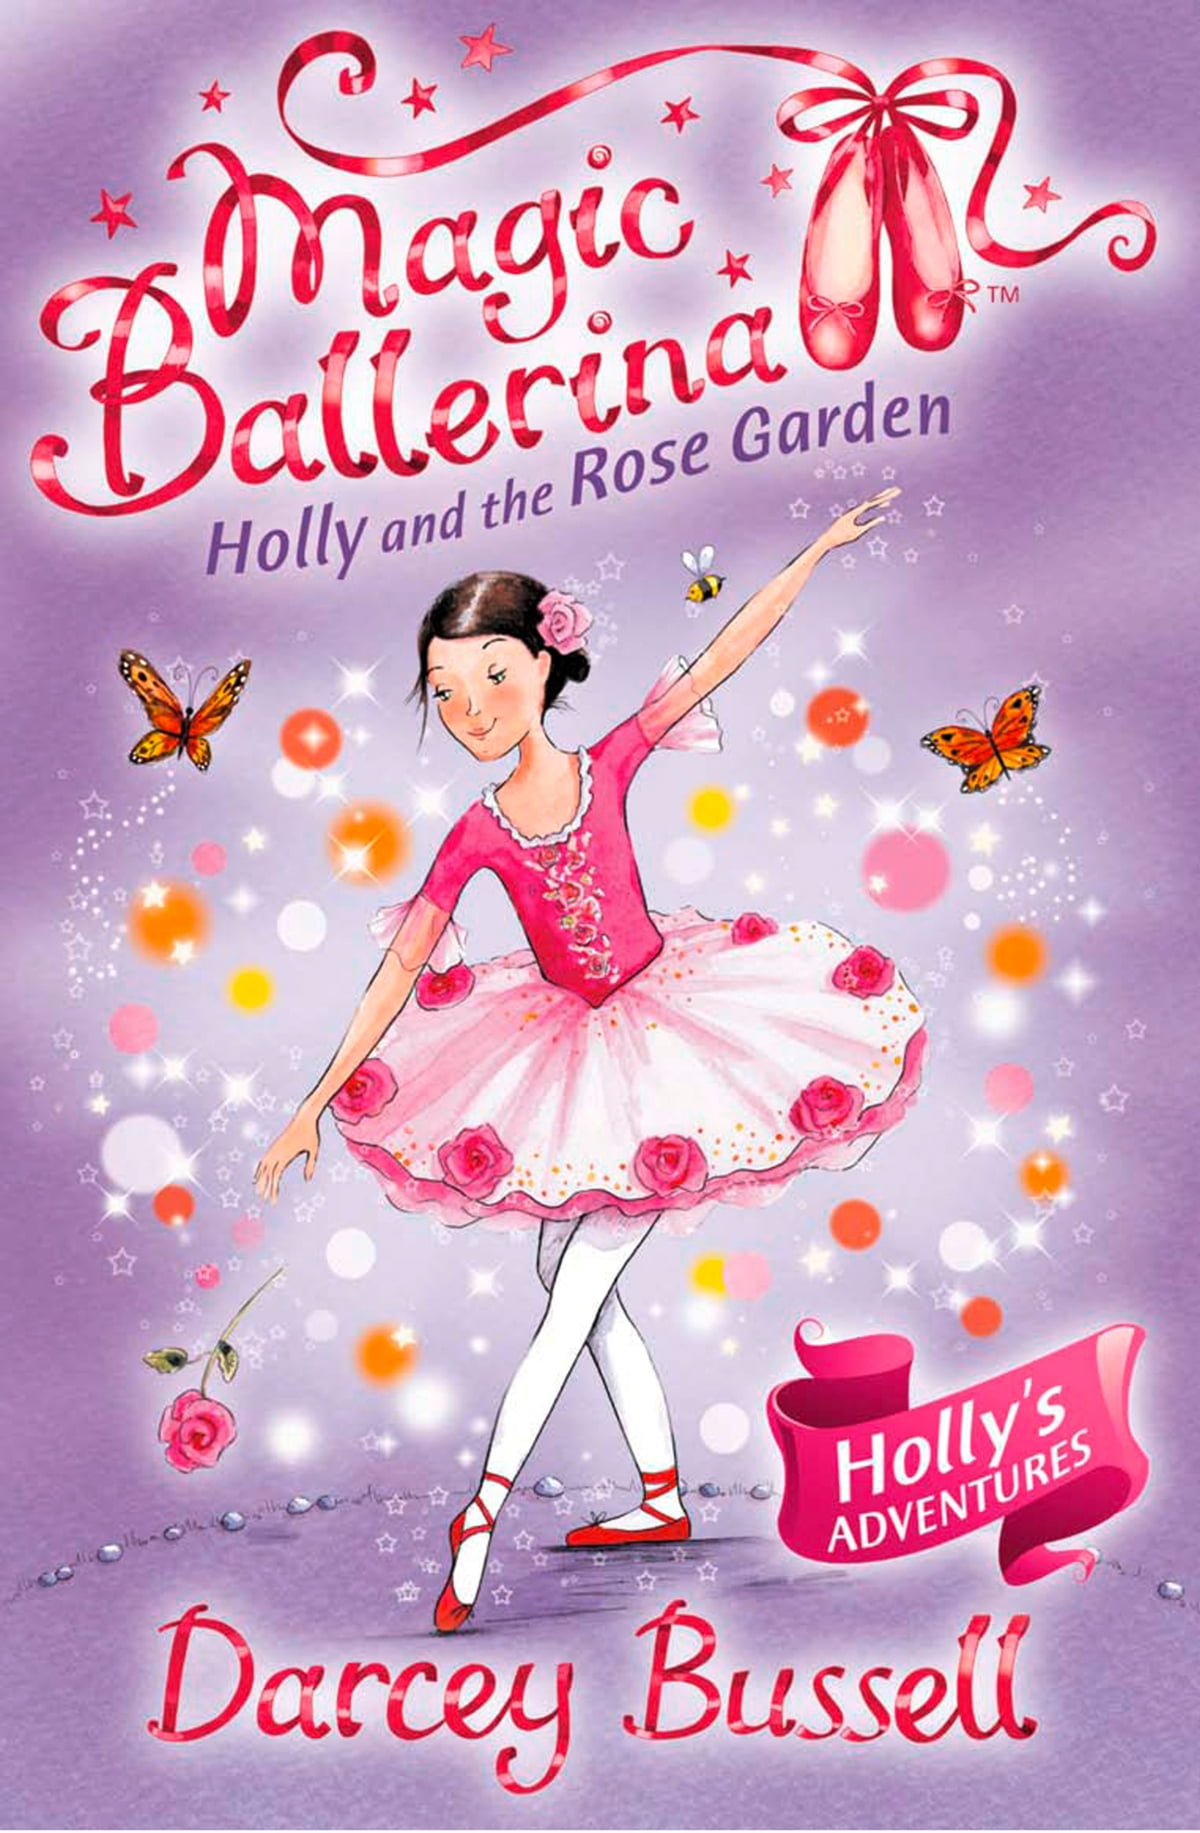 Gorgeous Holly And The Rose Garden Magic Ballerina Book  Ebook By  With Marvelous Holly And The Rose Garden Magic Ballerina Book  Ebook By Darcey  Bussell    Kobo With Charming Garden Nursery Houston Tx Also Aluminium Garden Furniture Sale Uk In Addition Fontana Gardens And Garden Shredders And Chippers As Well As Garden Xmas Decorations Additionally Gardening Gifts For Her From Kobocom With   Marvelous Holly And The Rose Garden Magic Ballerina Book  Ebook By  With Charming Holly And The Rose Garden Magic Ballerina Book  Ebook By Darcey  Bussell    Kobo And Gorgeous Garden Nursery Houston Tx Also Aluminium Garden Furniture Sale Uk In Addition Fontana Gardens From Kobocom